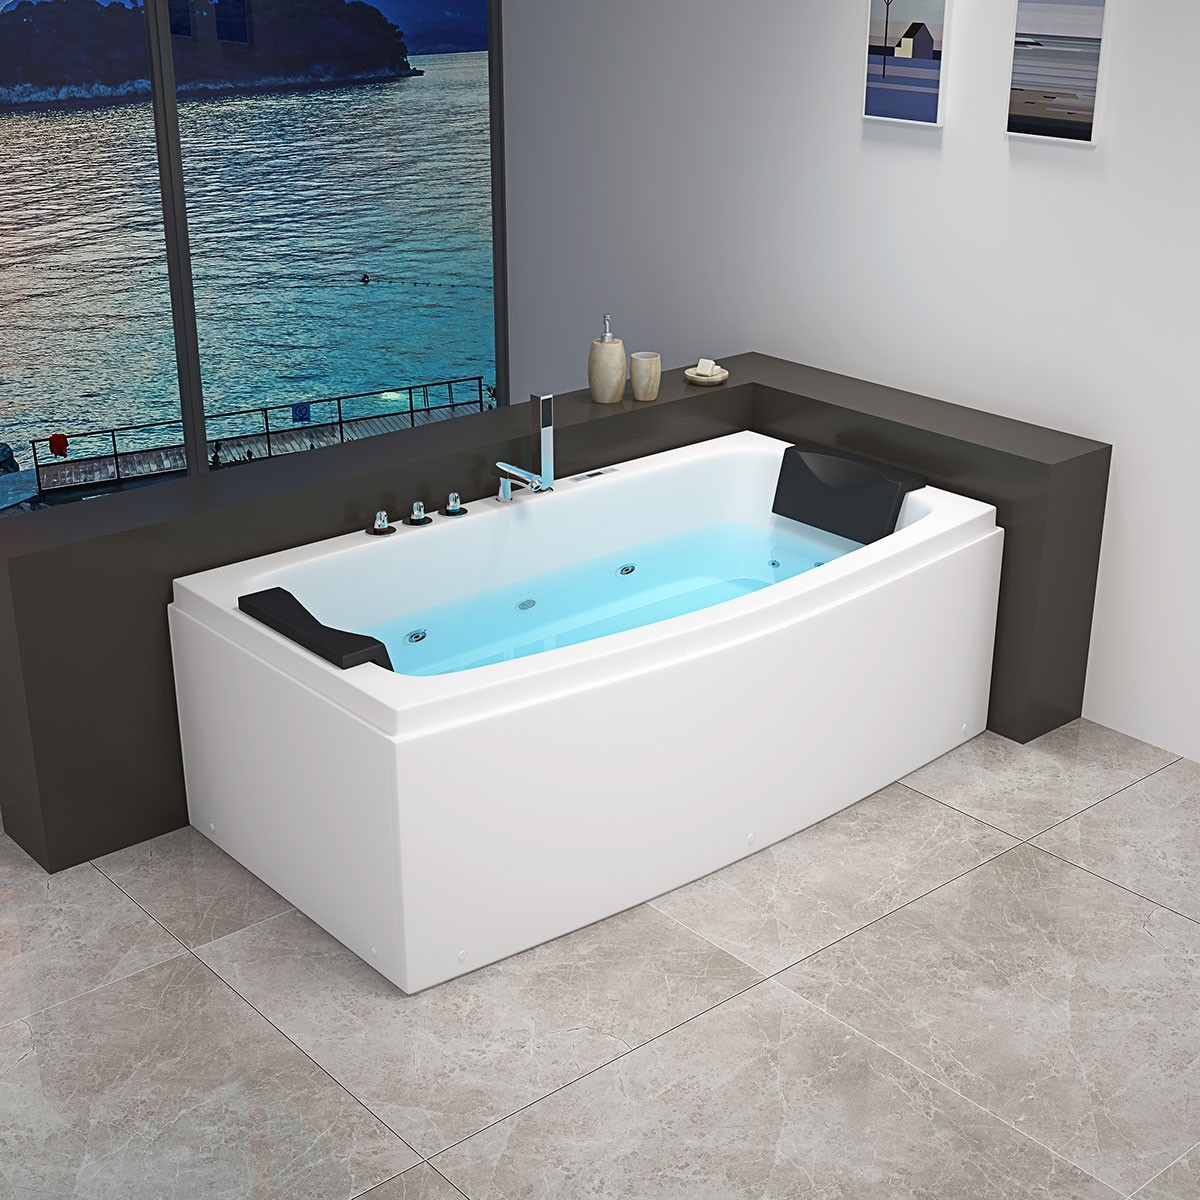 Decoraport 67 x 32 In Whirlpool Tub with Computer Panel, Heater, Ozone (DK-RL-6141)